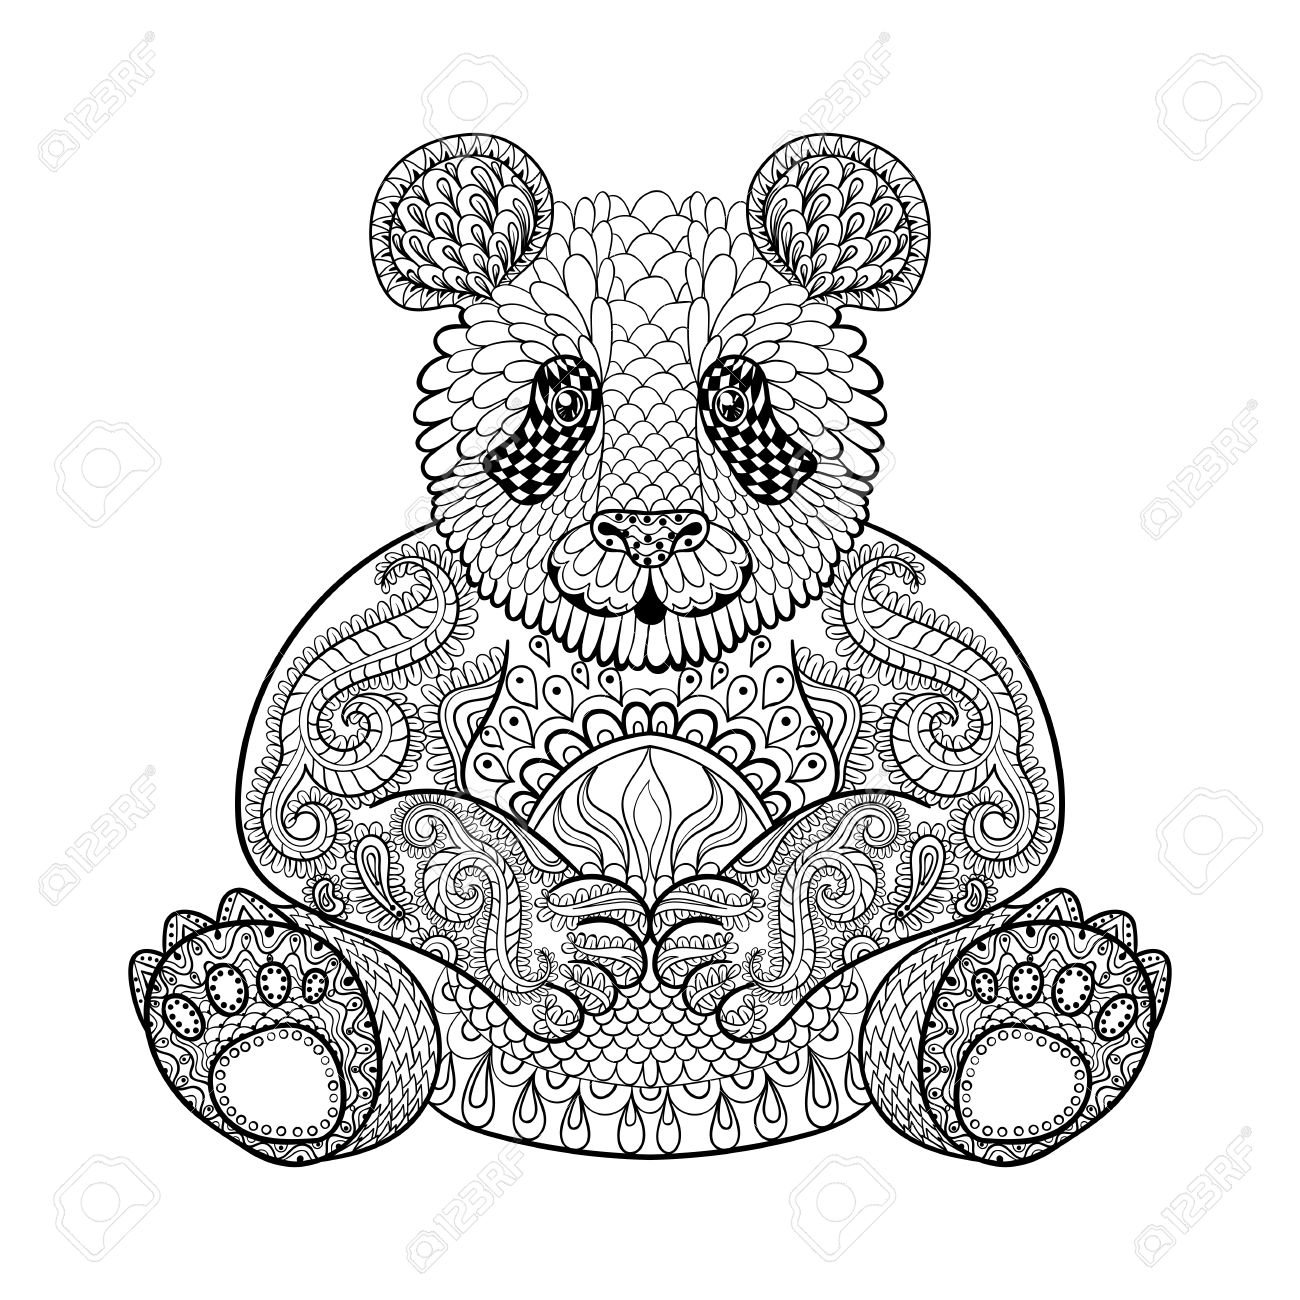 Hand Drawn Tribal Panda, Animal Totem For Adult Coloring Page ...